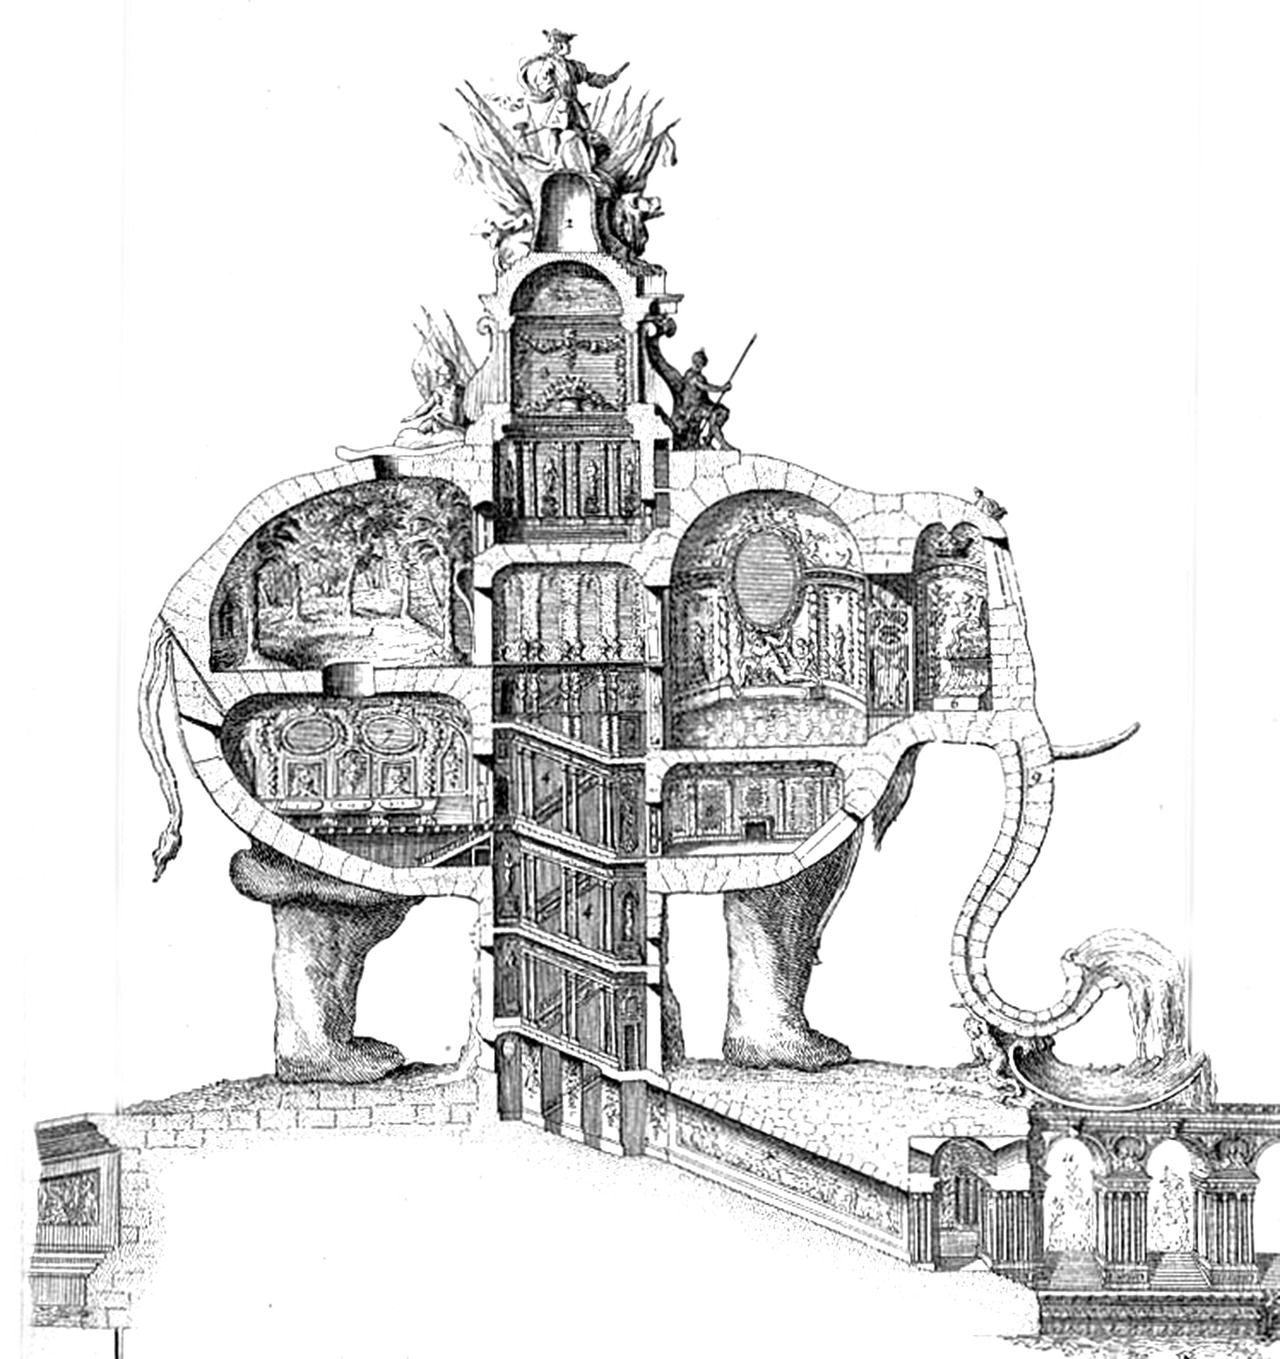 Charles Ribart, Éléphant triomphal, French project, 1758.